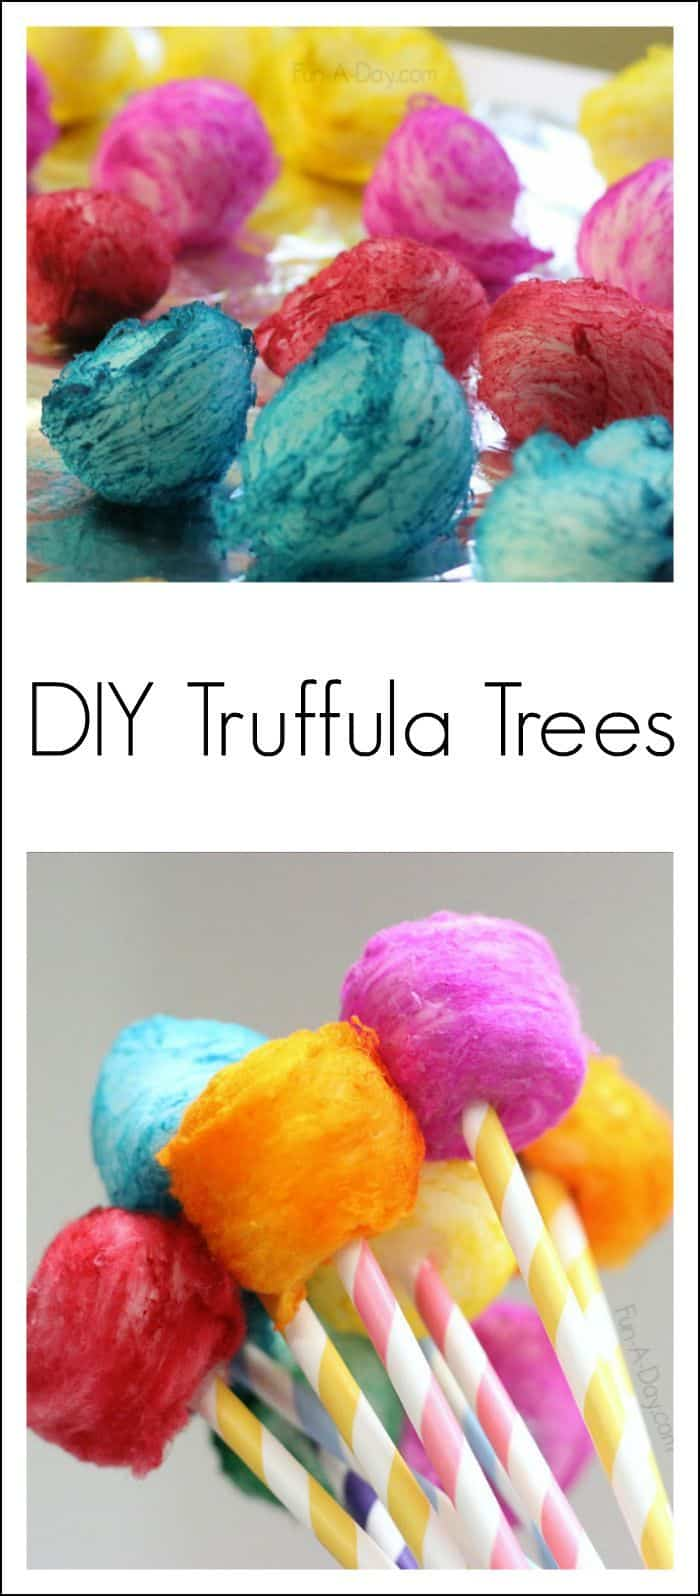 Diy trufula trees